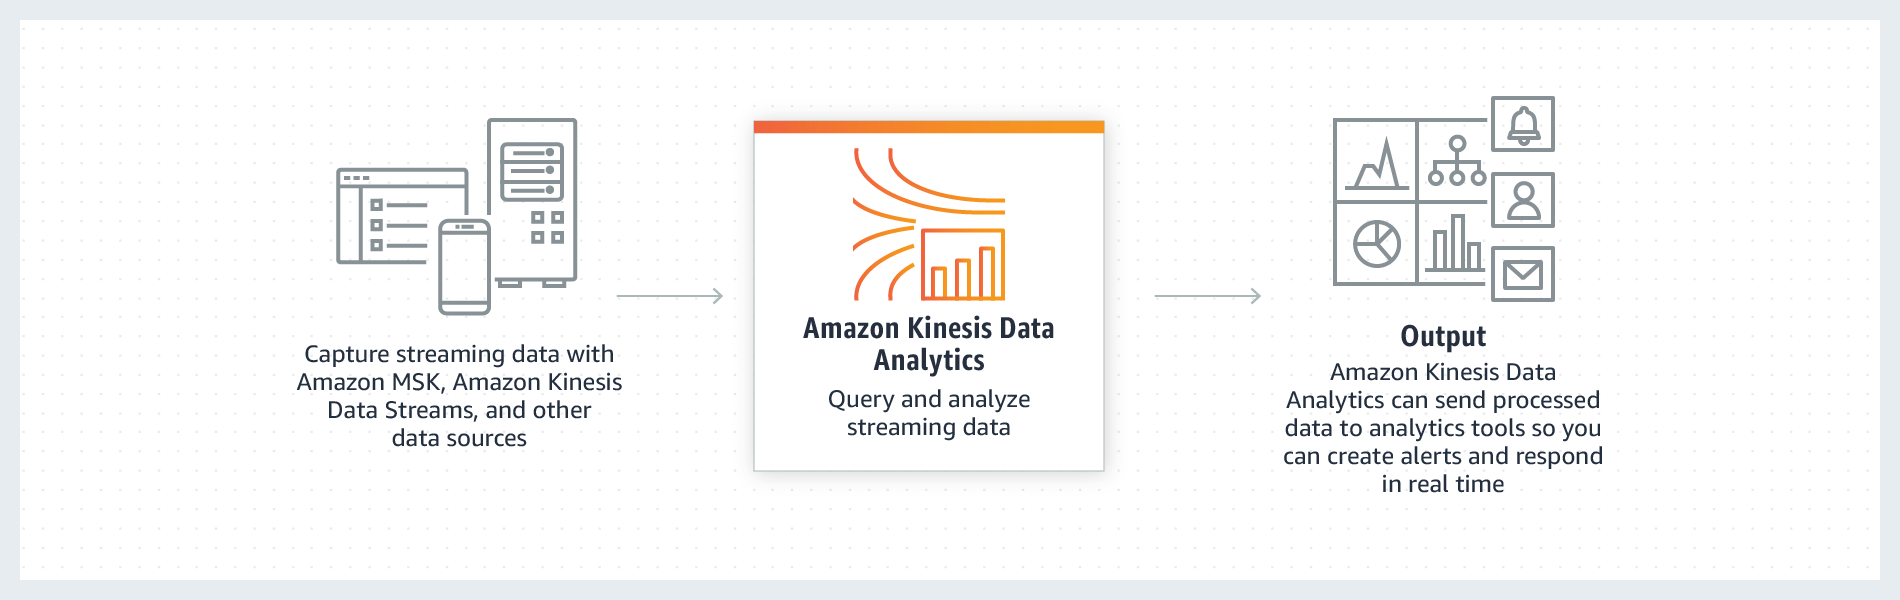 Amazon Kinesis Data Analytics 작동 방식